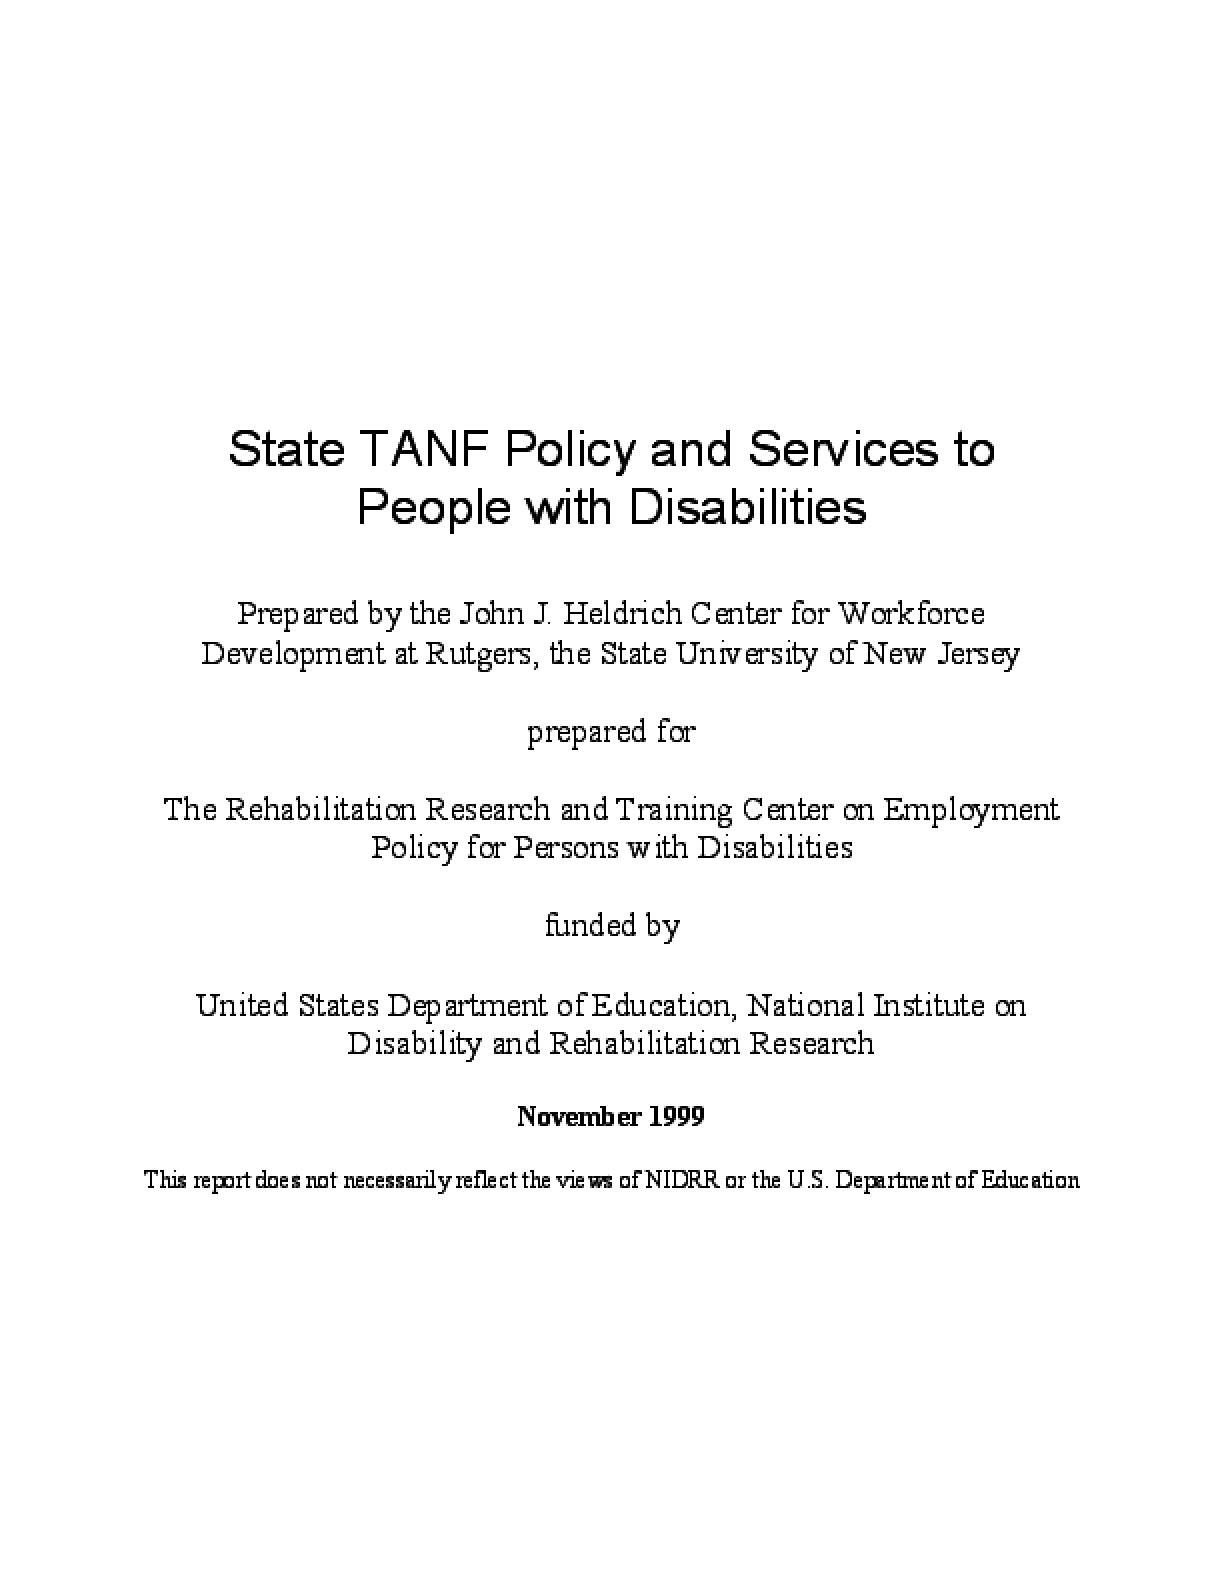 State TANF Policy and Services to People With Disabilities